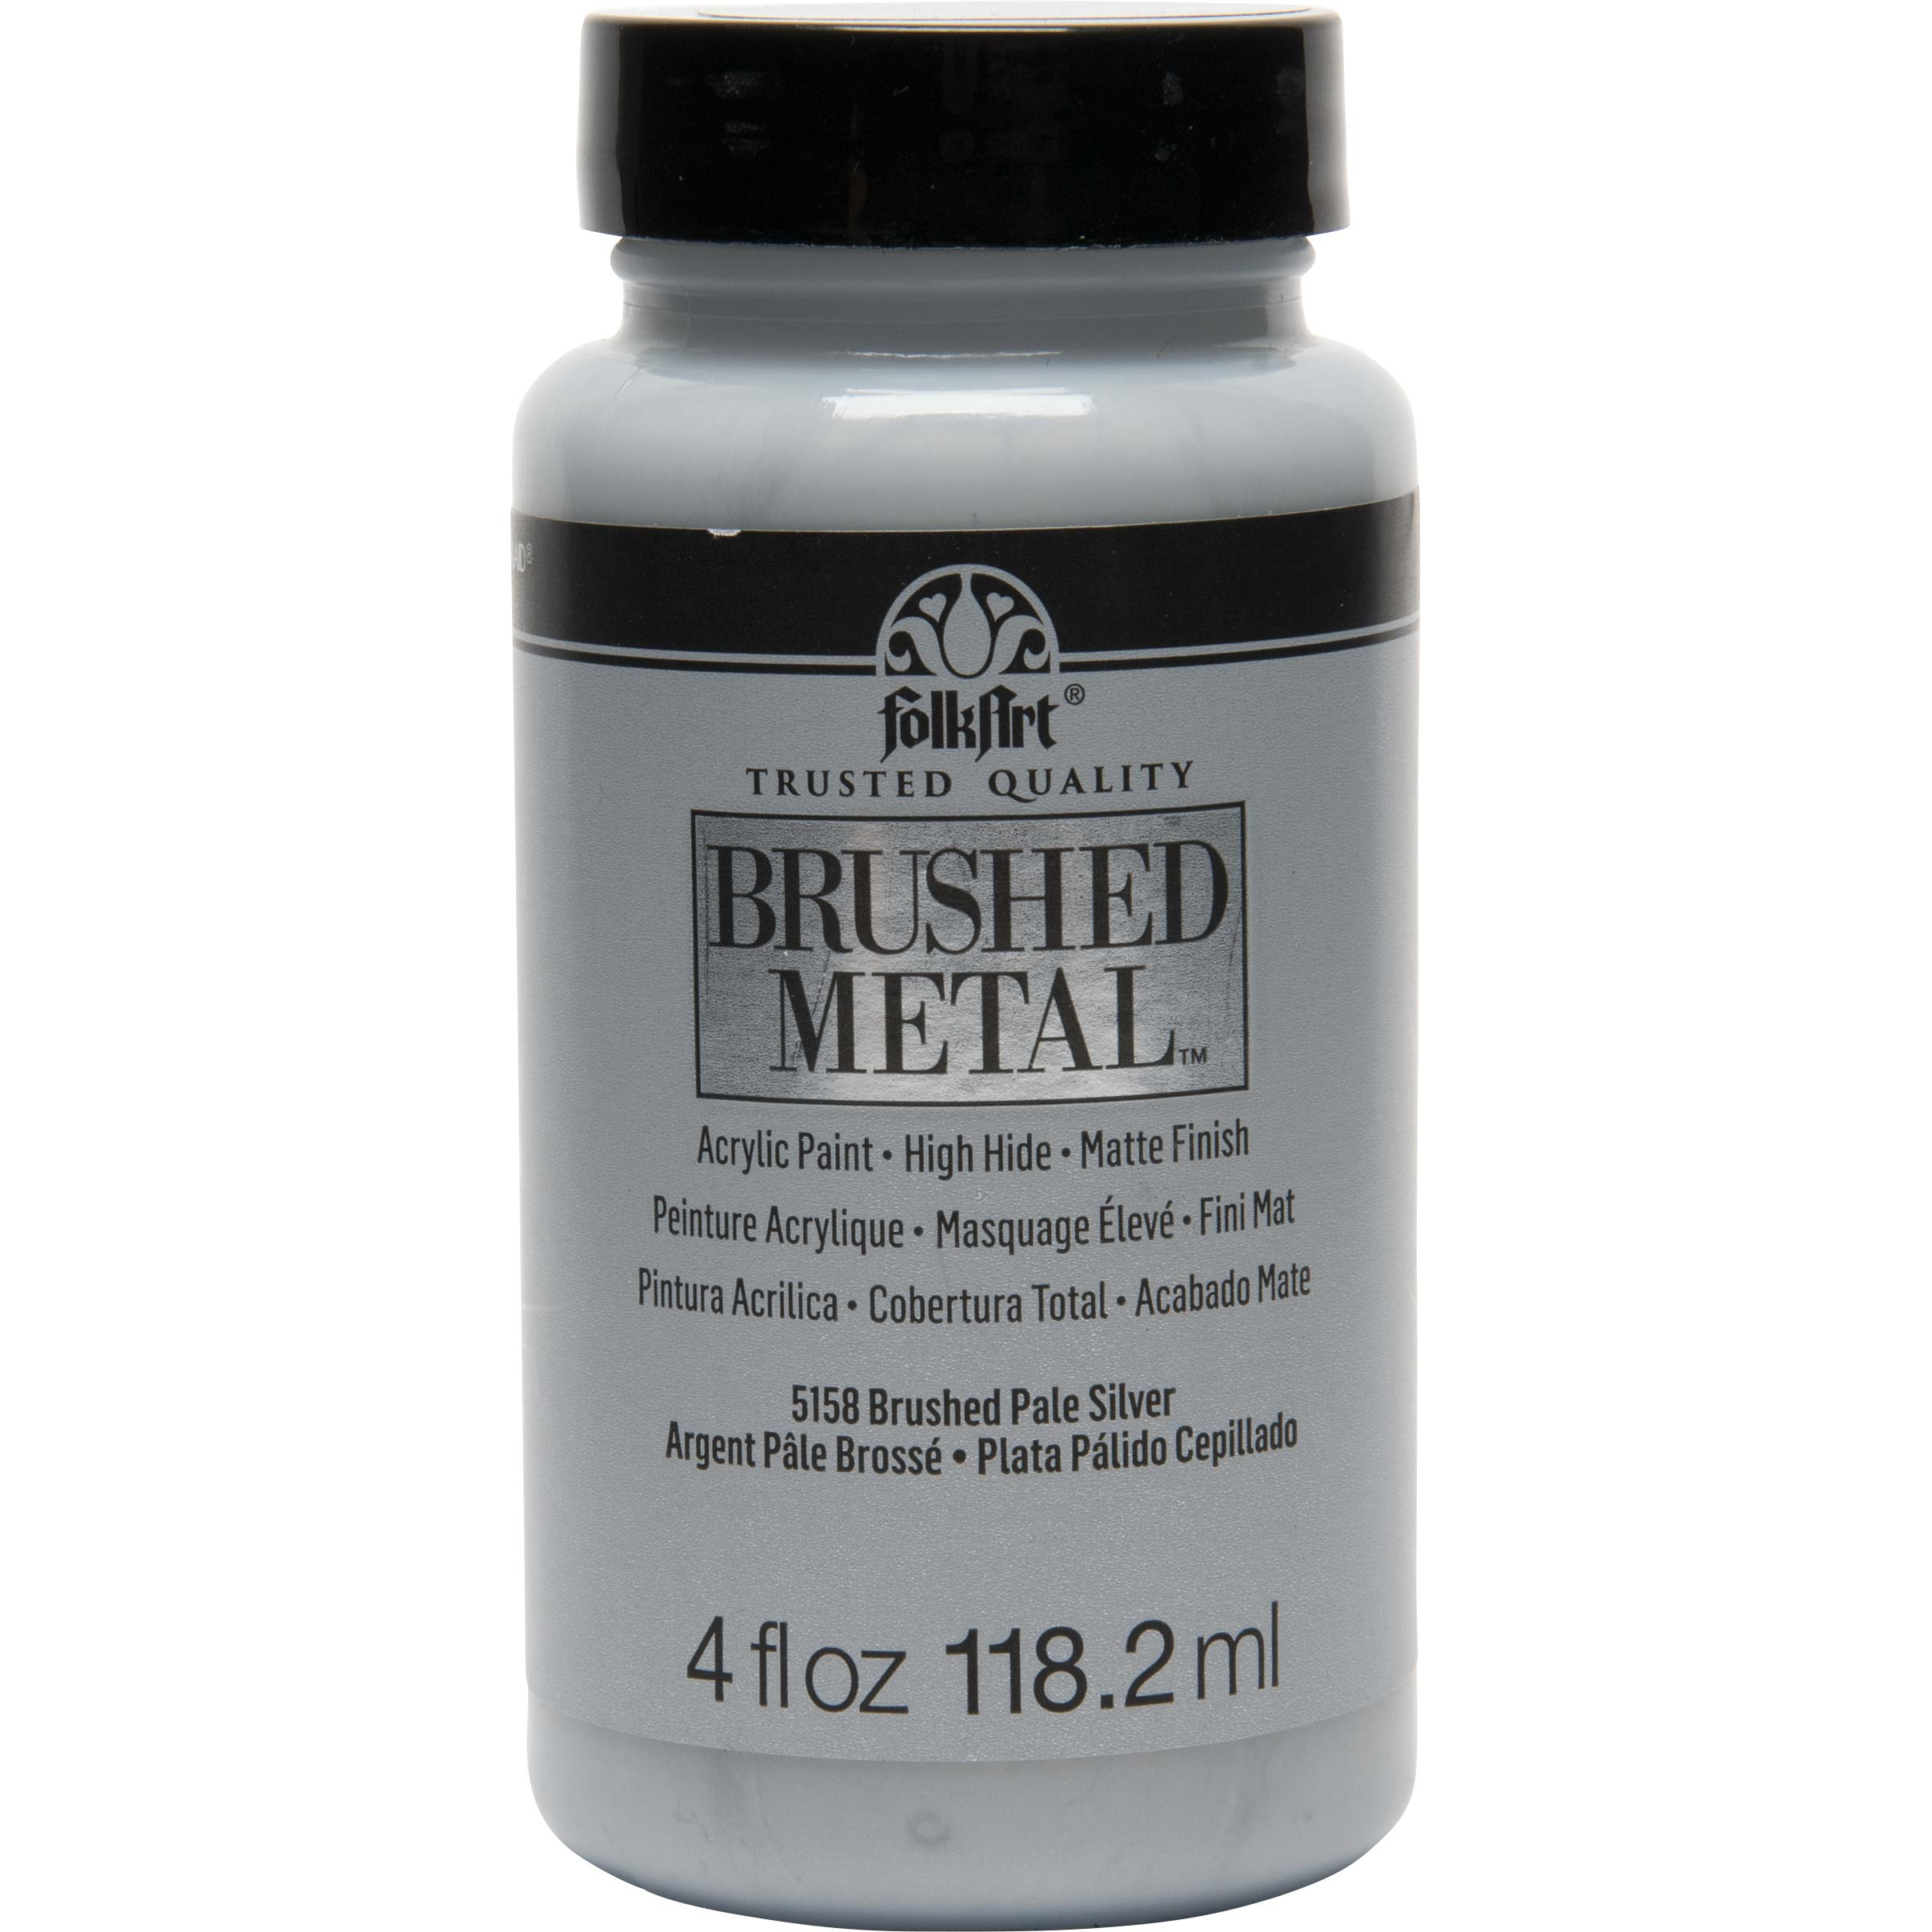 FolkArt ® Brushed Metal™ Acrylic Paint - Pale Silver, 4 oz.